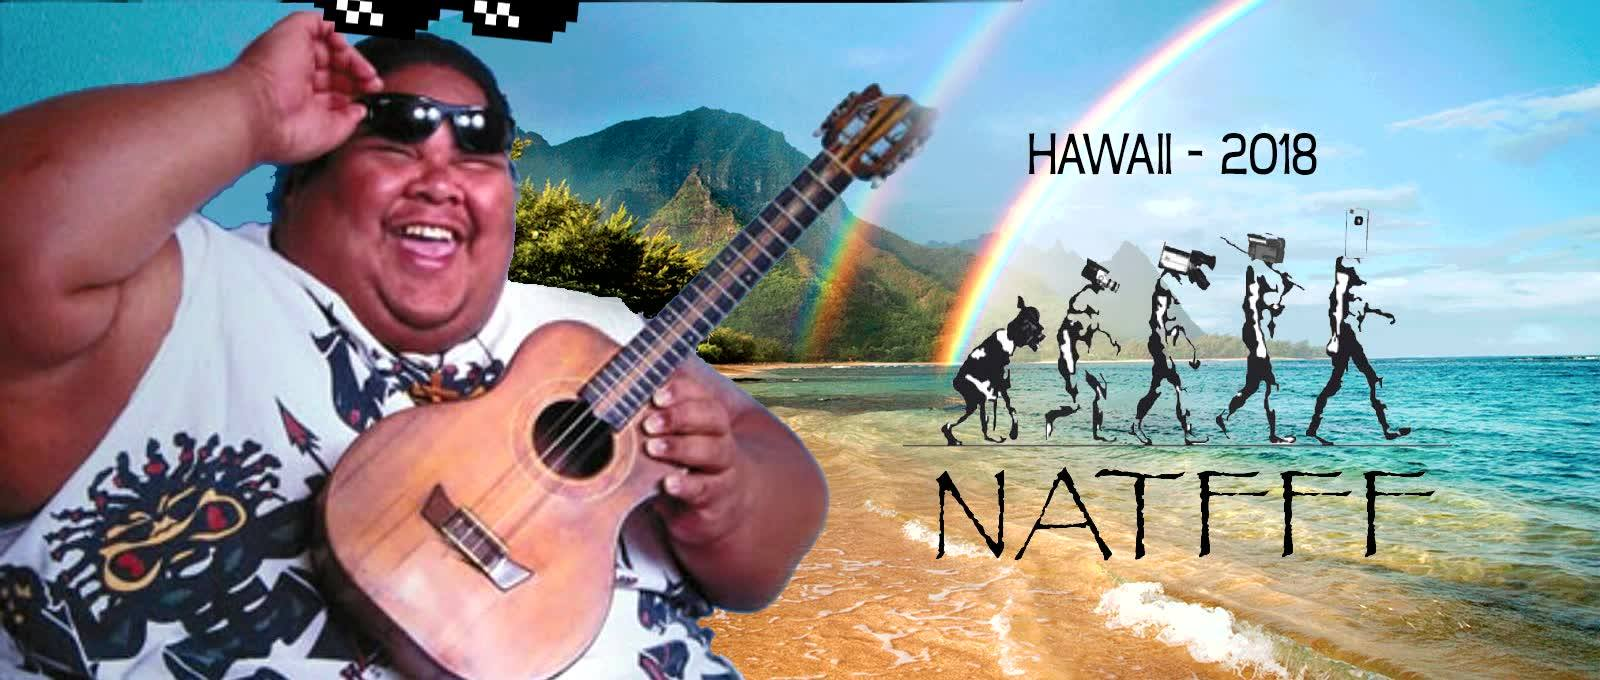 NATFFF 2018 - THE ONLY TEASER FESTIVAL of NORTH AMERICA  We are proud to inform you that this year we will be having our festival in Hawaii, USA. Diego Echave Foundation will be supporting our organization. Sponsors and donations are now available!